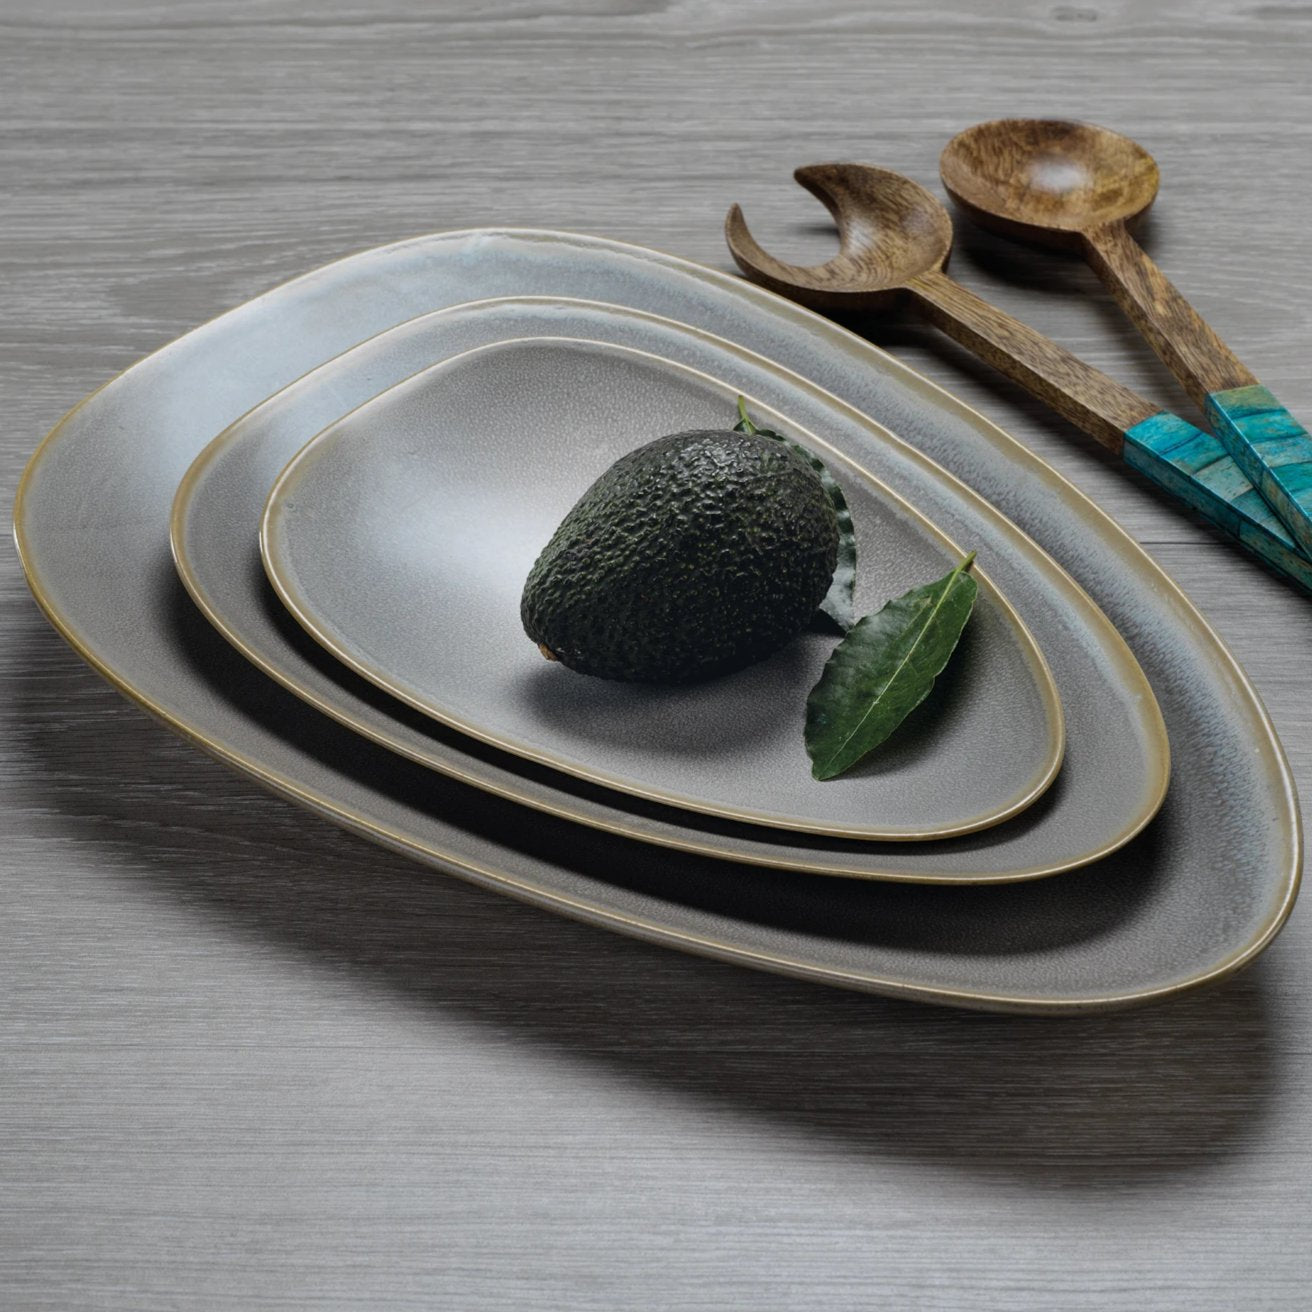 Seychelles Ceramic Platter - CARLYLE AVENUE